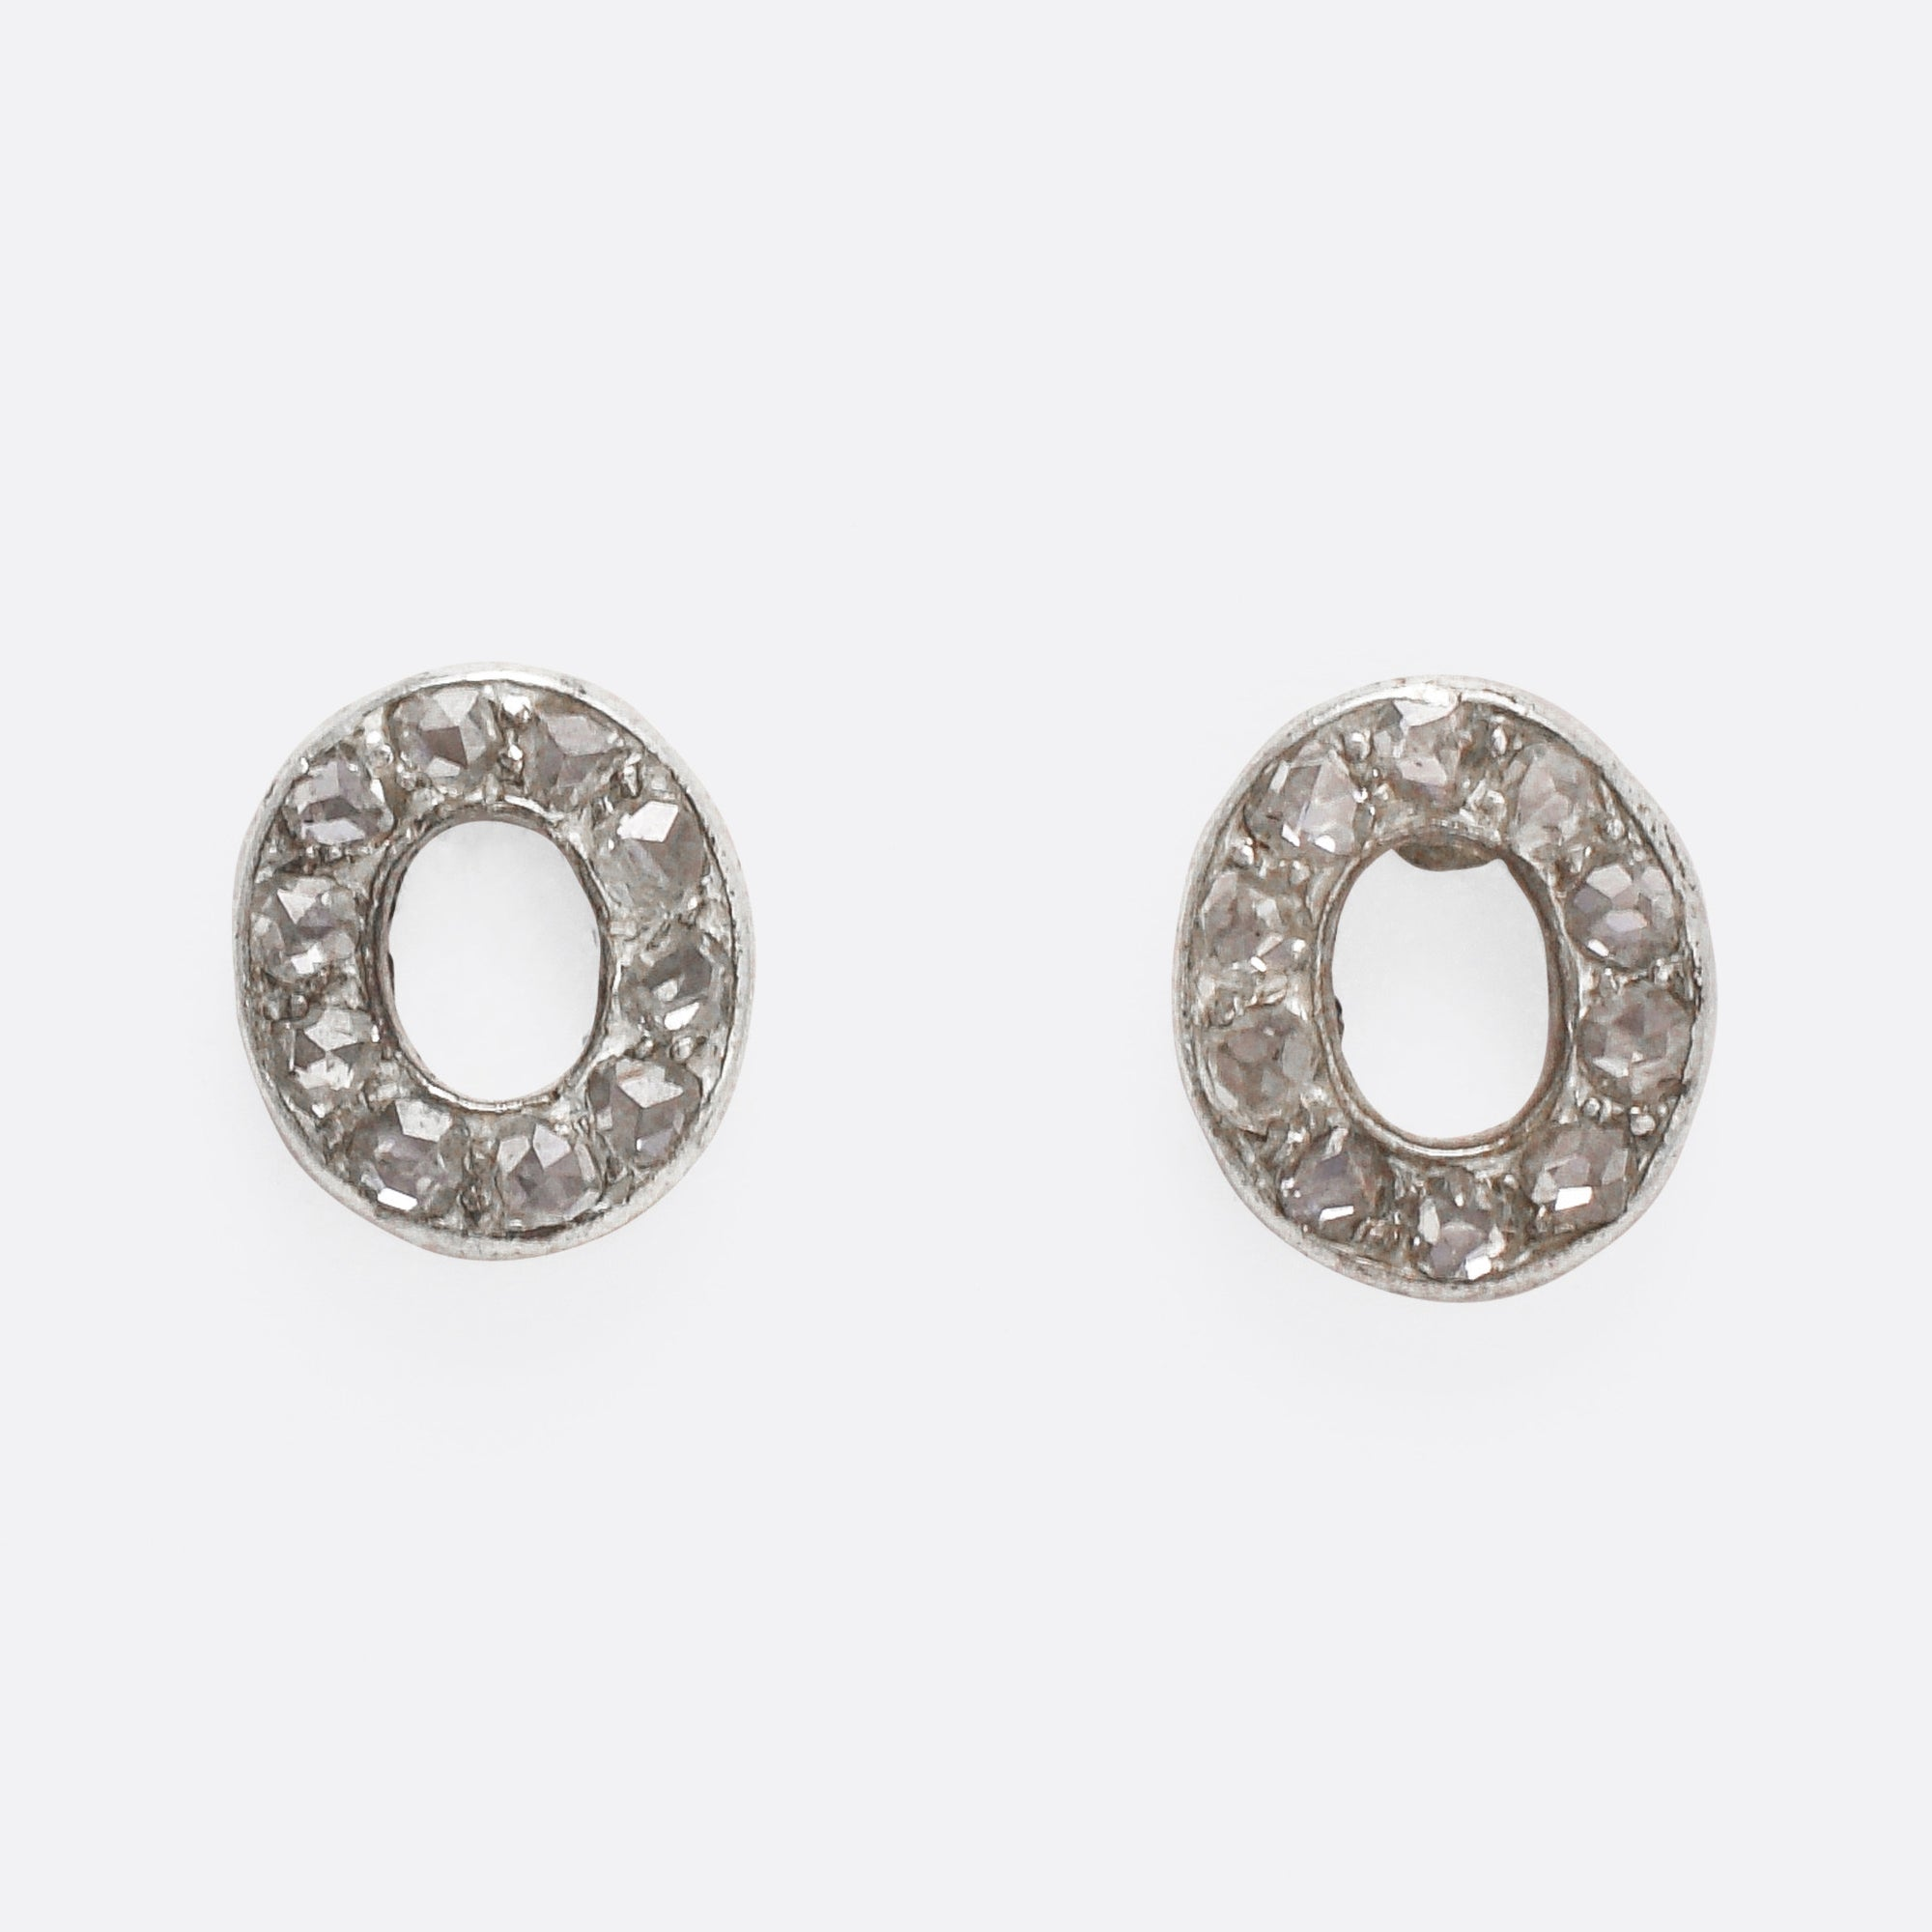 selin rg sk stud sophiastuds product wd earrings kent ahalife sophia jewellery diamond